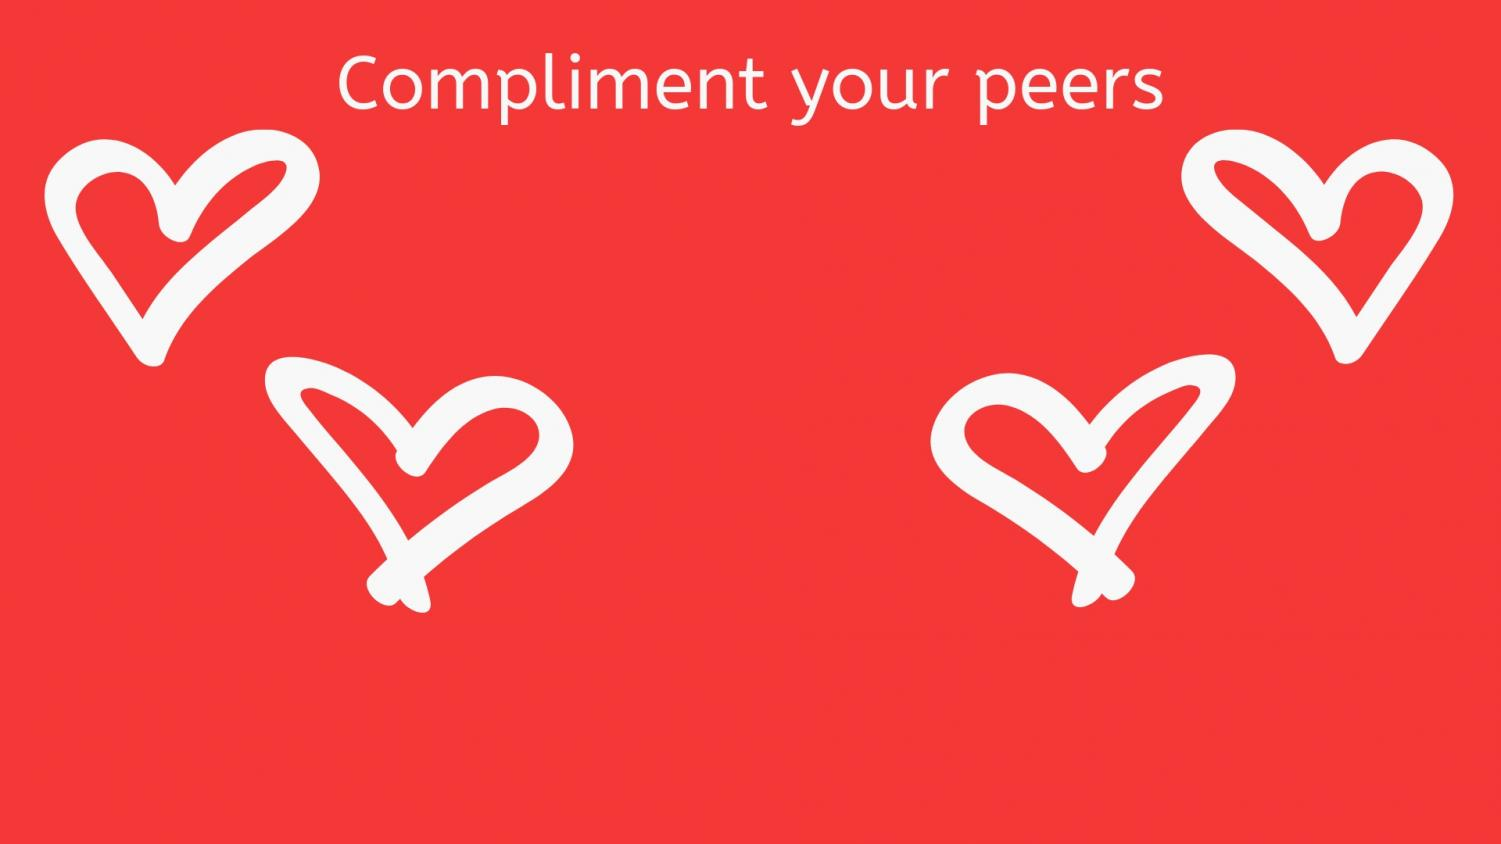 Compliment+your+peers+-+As+much+as+this+could+make+someone%27s+day%2C+it+also+makes+you+feel+better+about+yourself.+We+all+think+of+compliments%2C+why+not+say+one+out+loud%3F